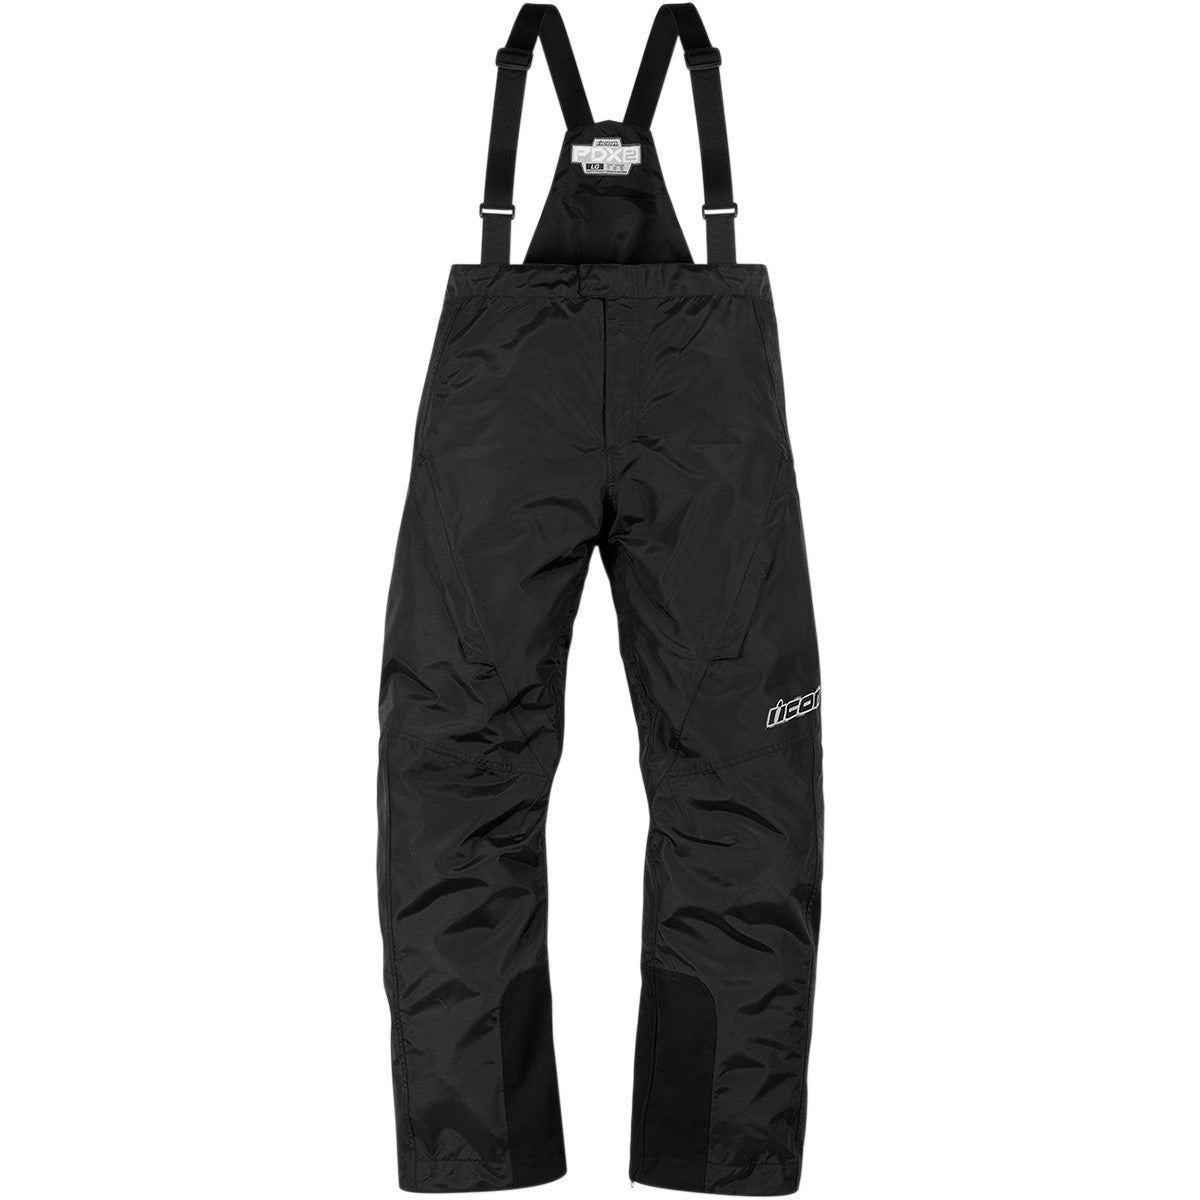 ICON MEN'S PDX 2 WATERPOOF BIBS